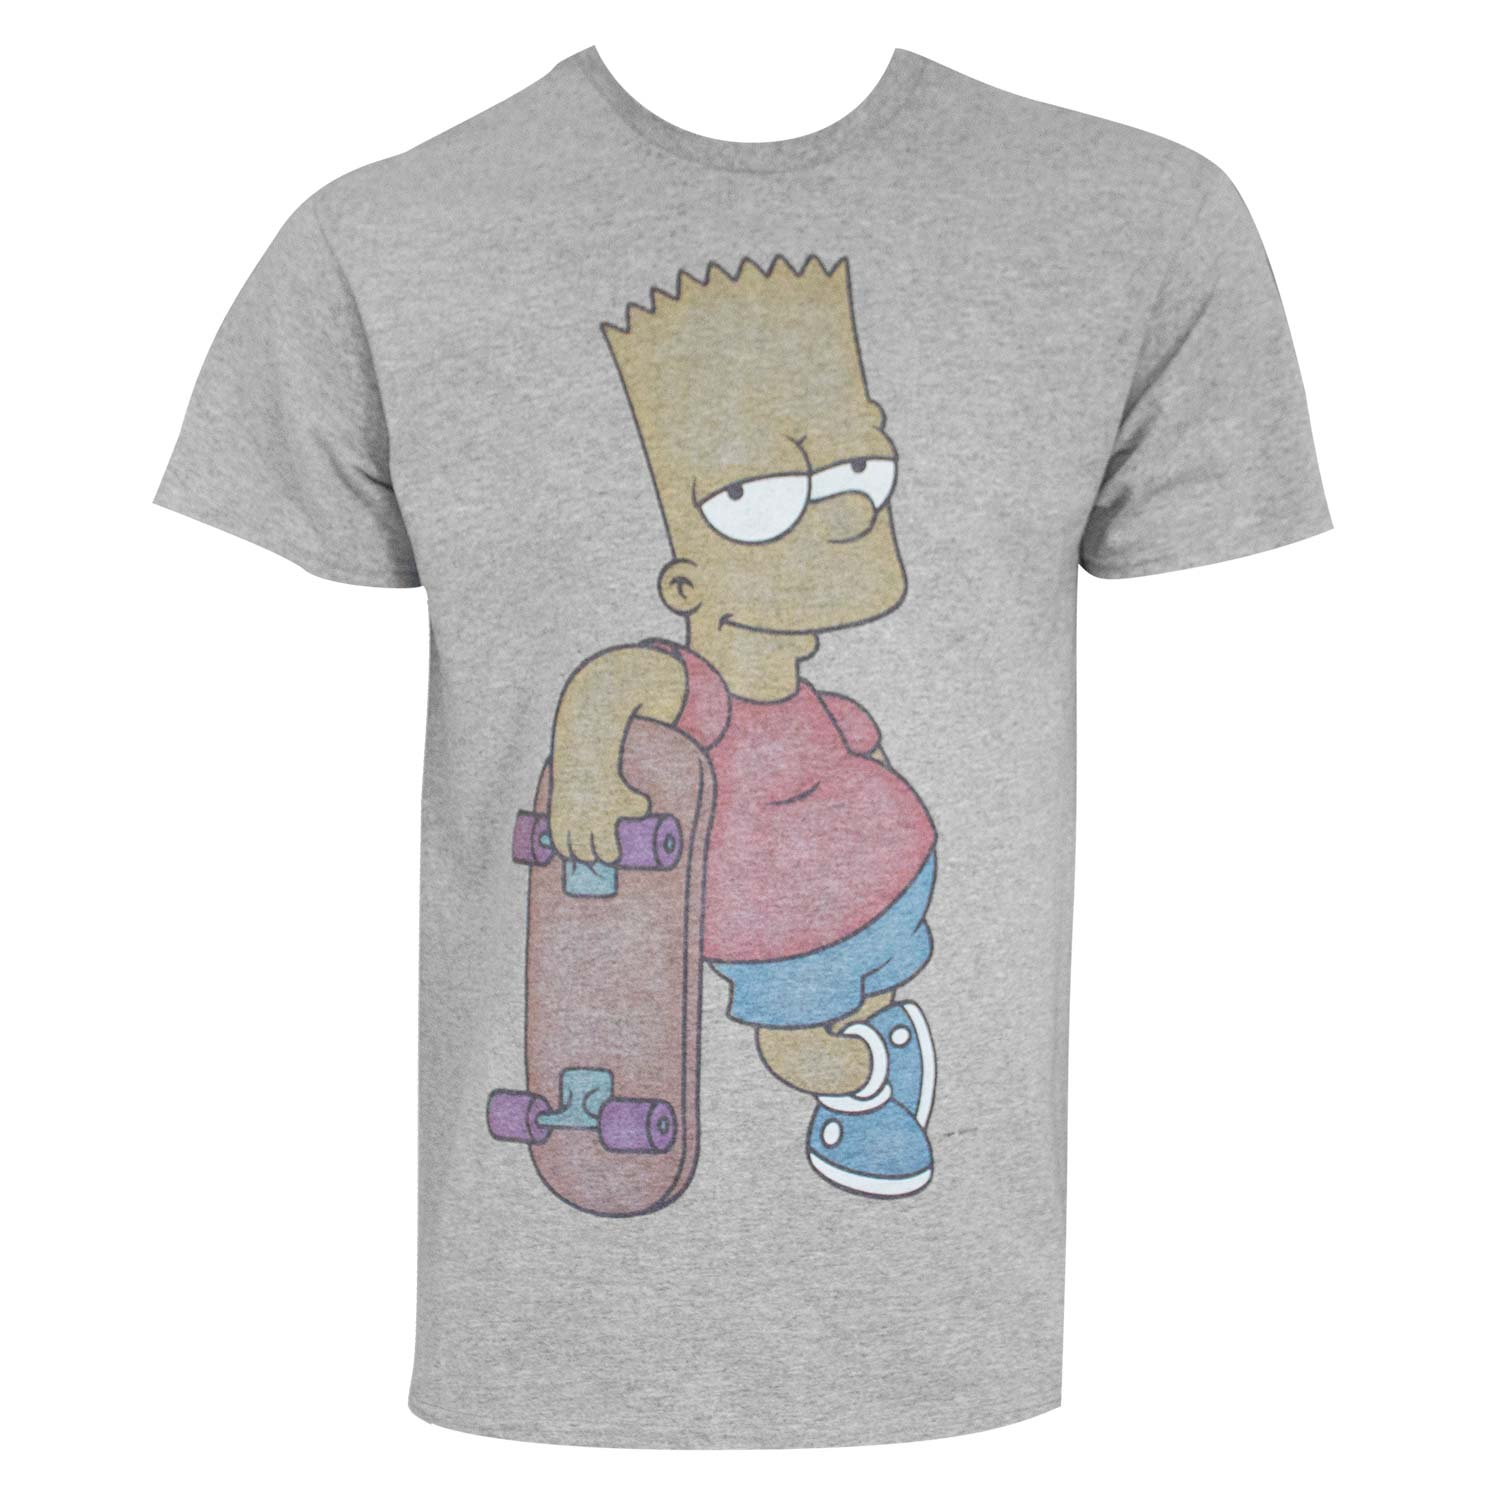 The Simpsons Bart Skateboard Tee Shirt